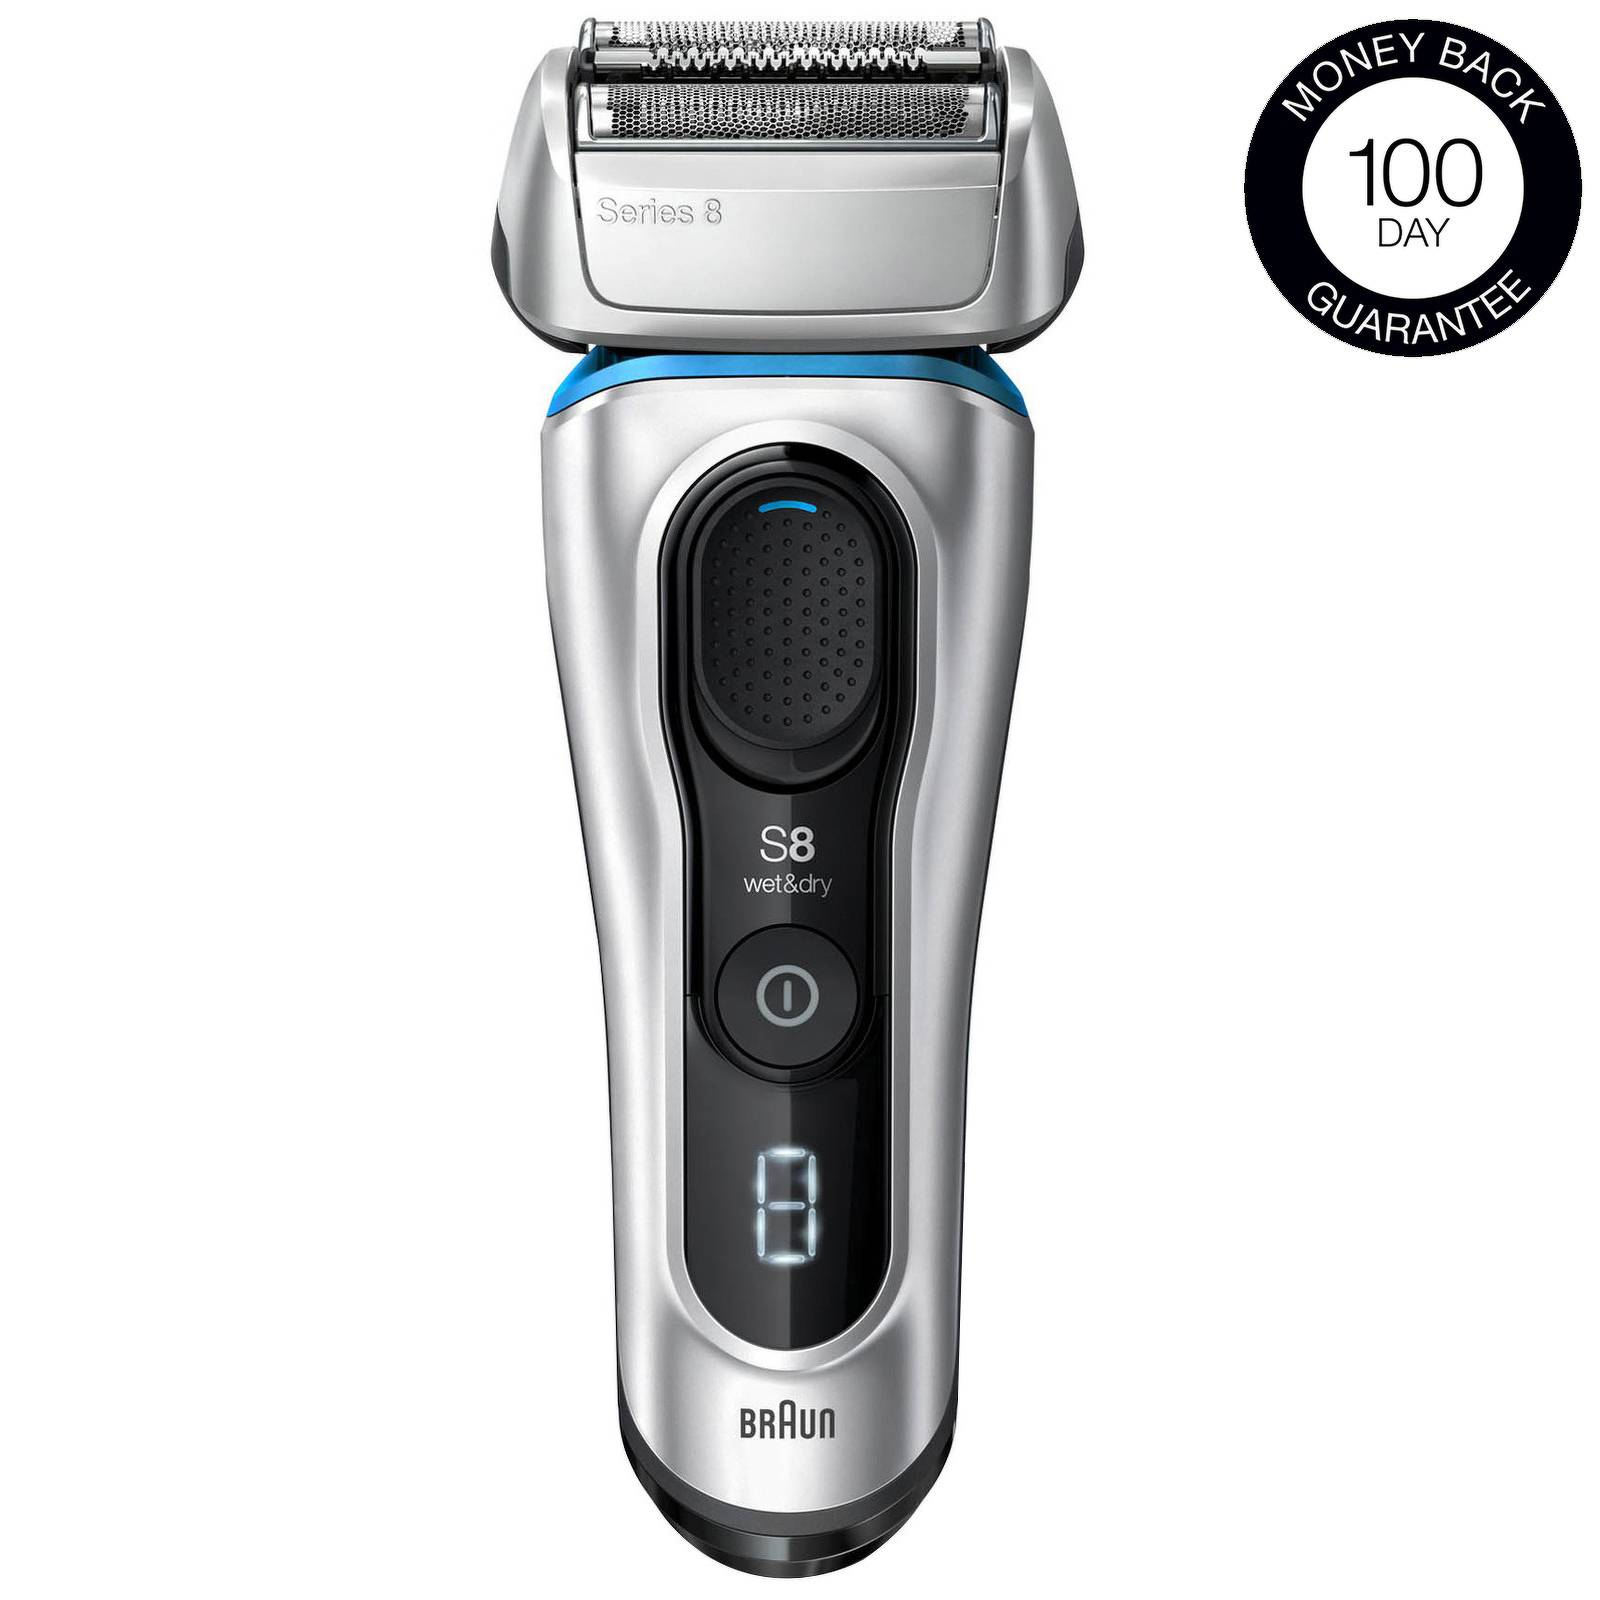 Braun - Series Shavers Series 8 8350s Electric Shaver for Men